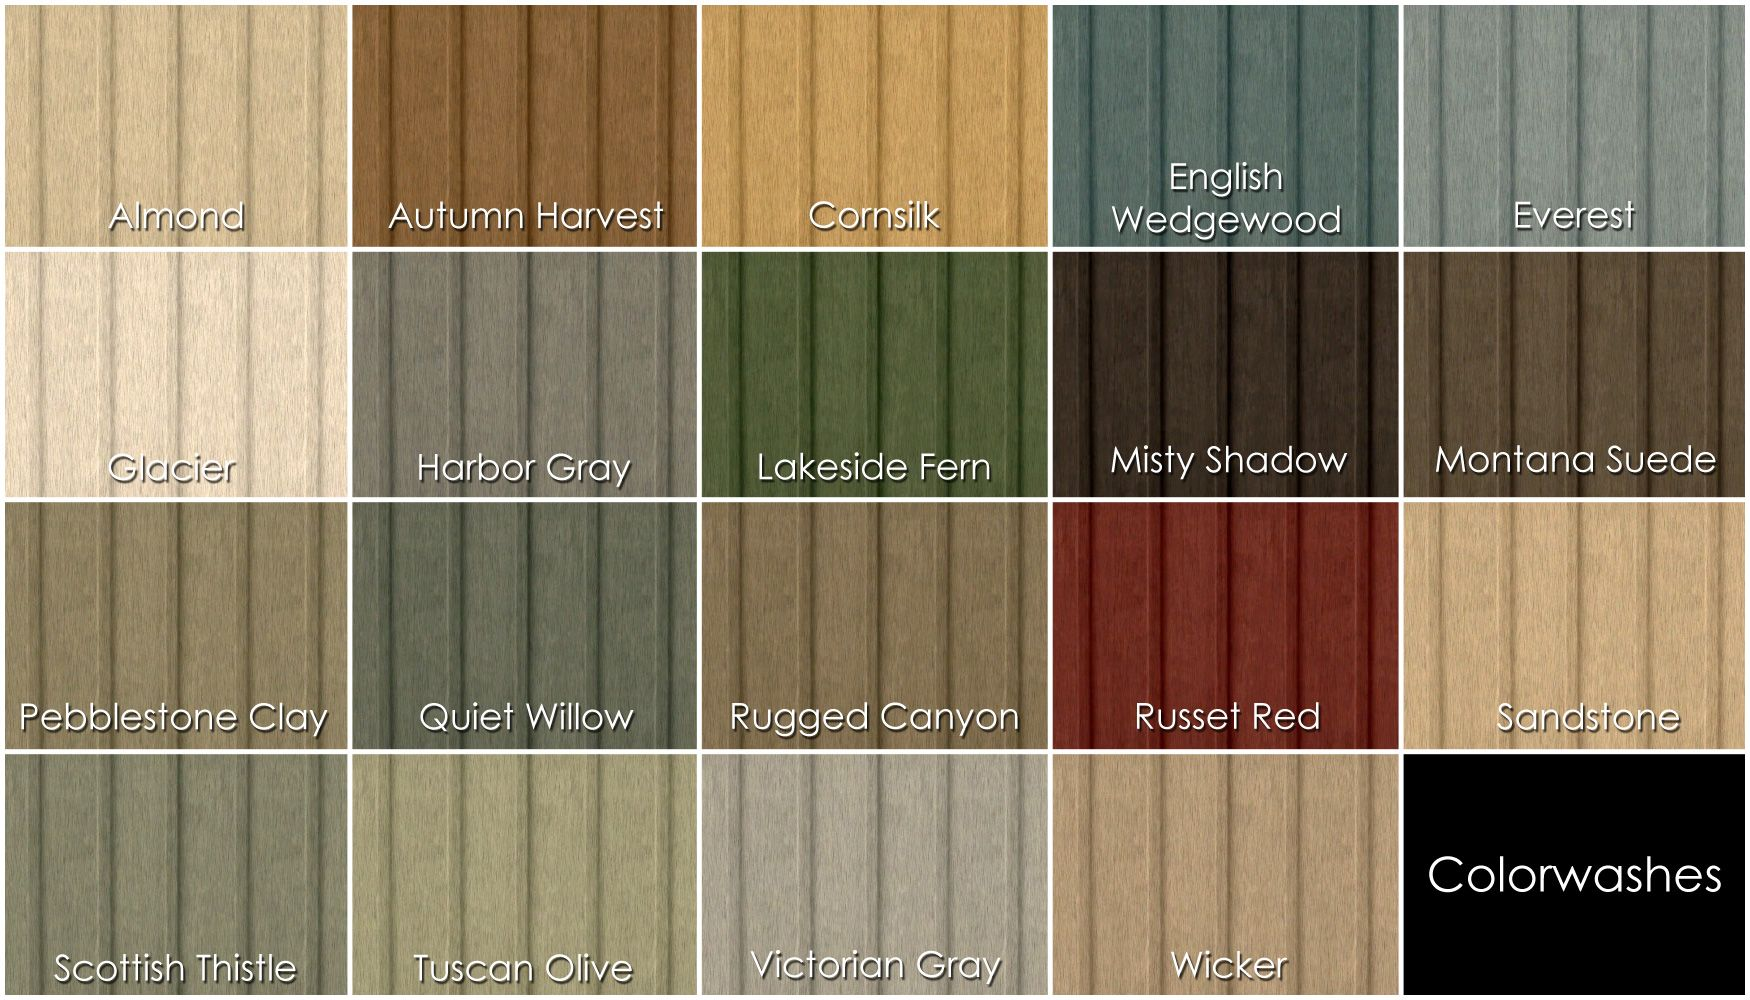 Fresh exterior solution ideas using board and batten - Exterior paint colours ideas collection ...